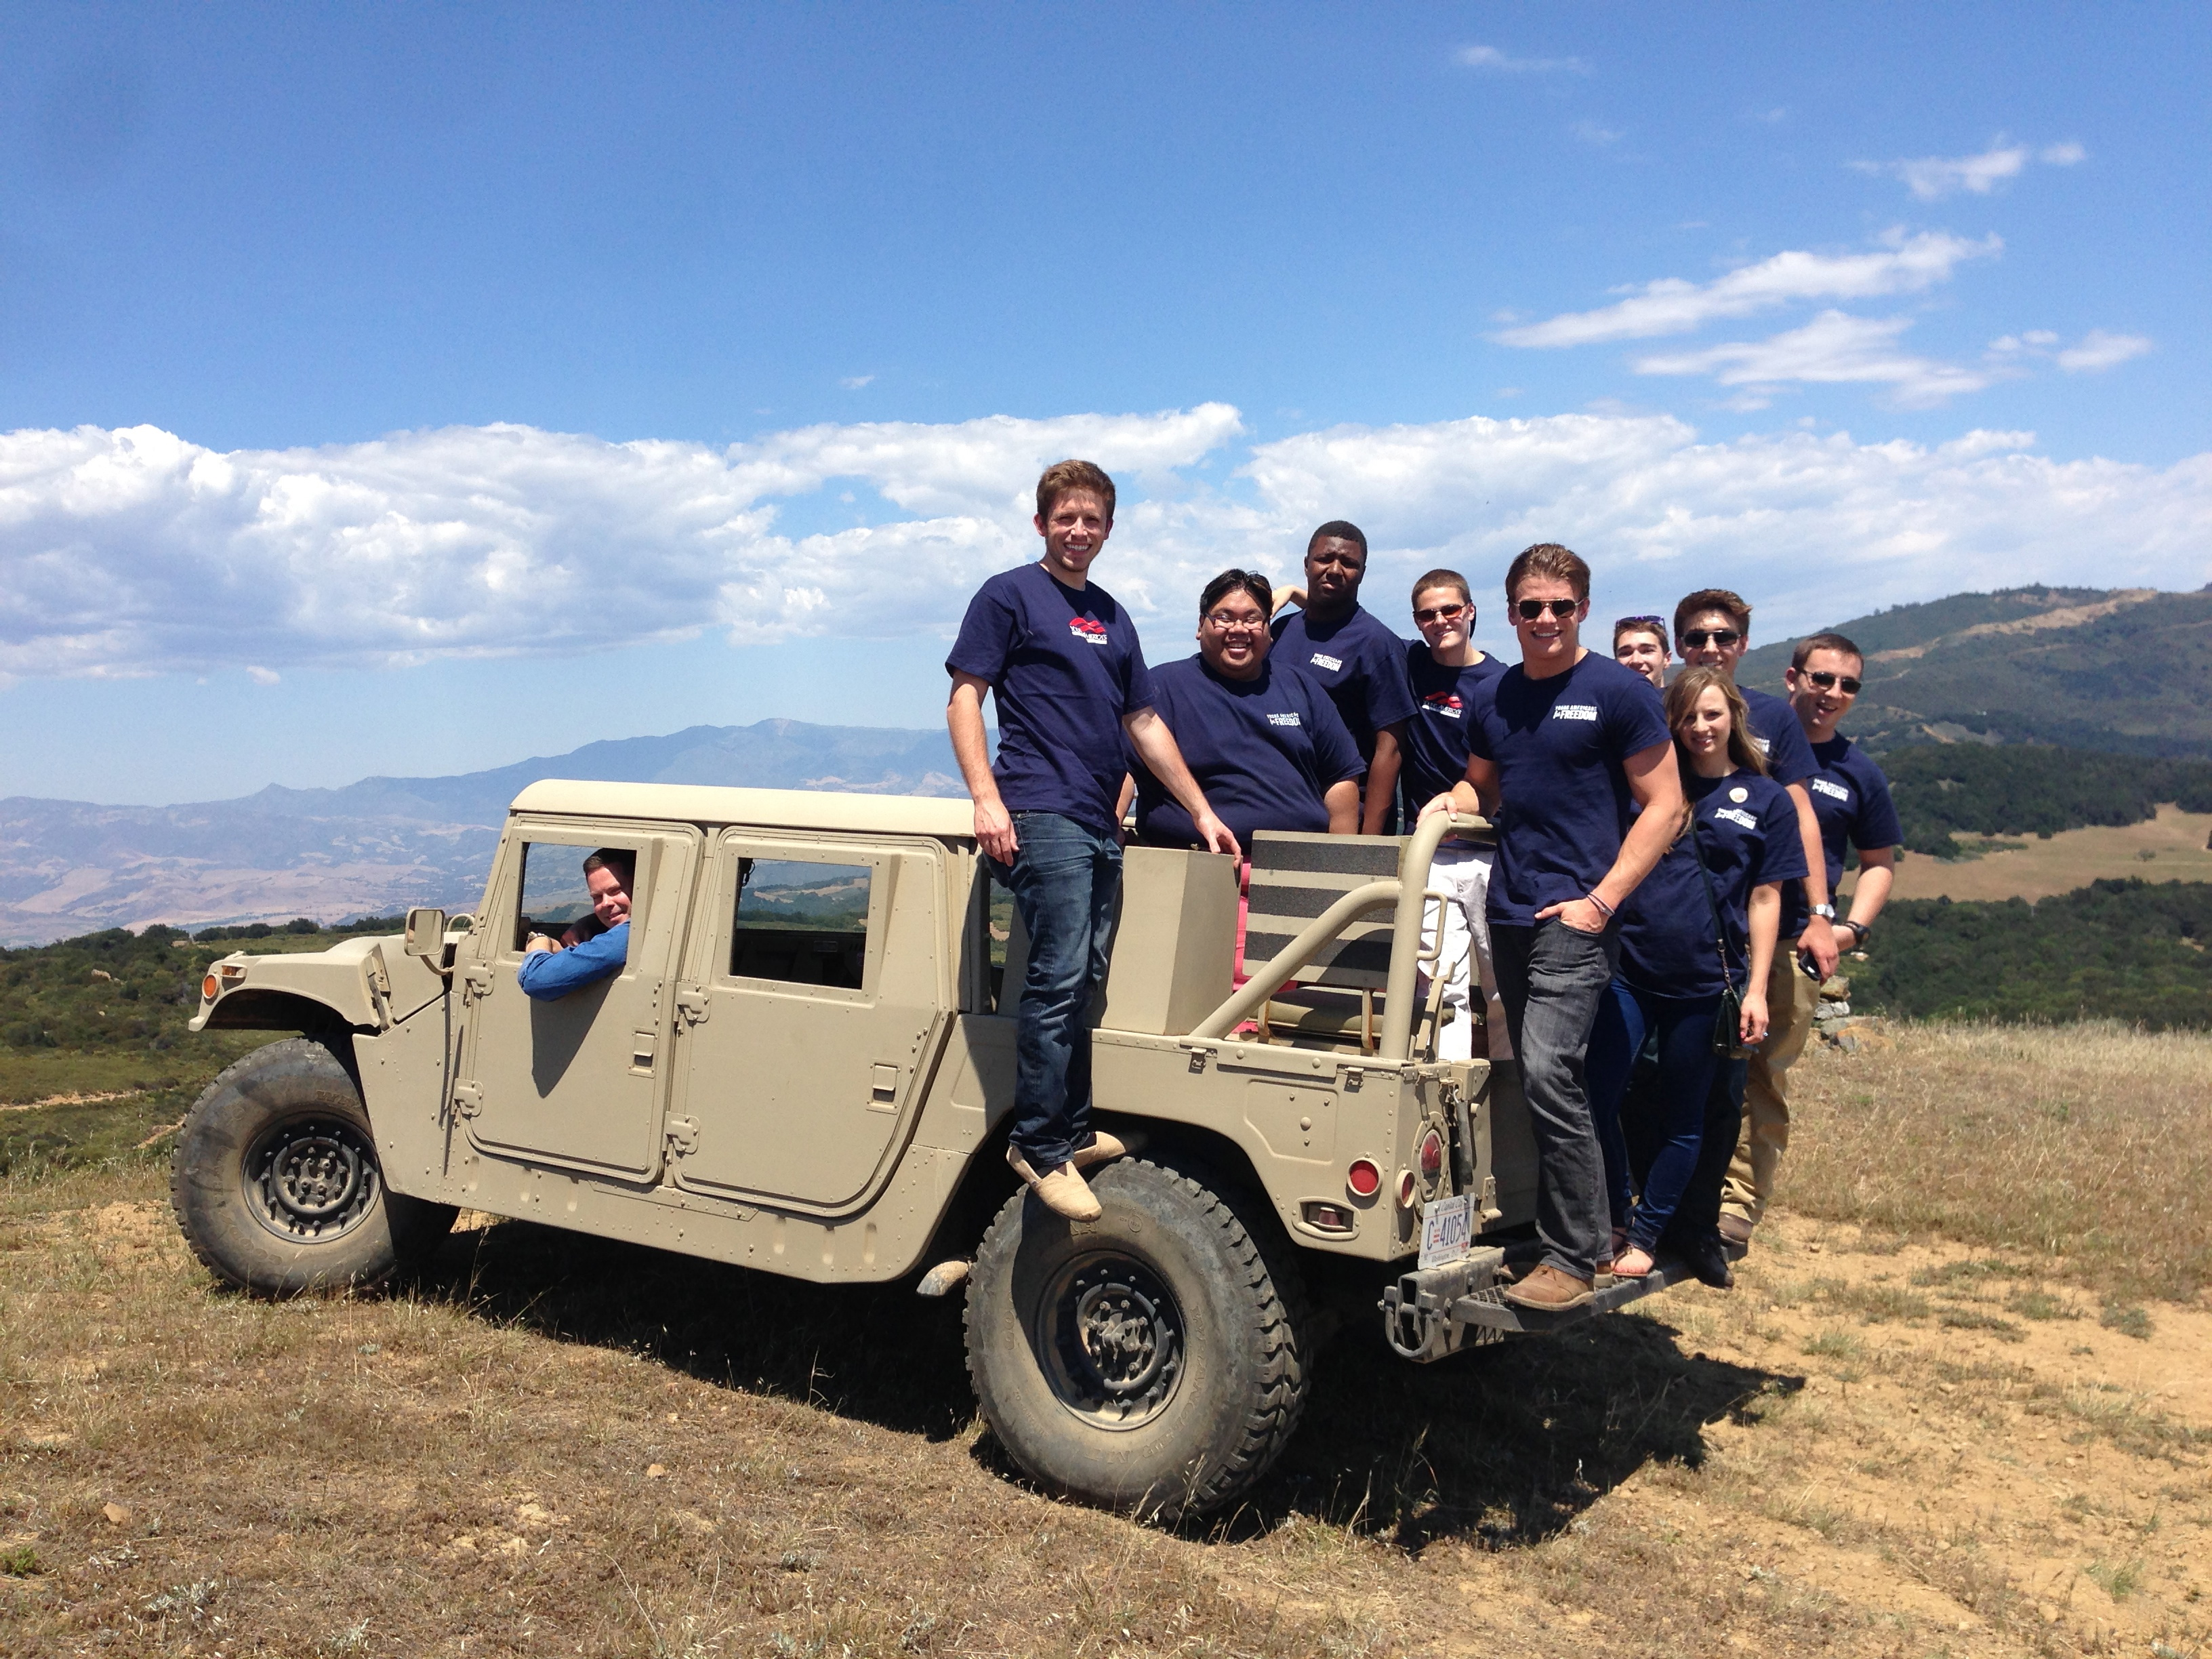 YAFers pose on a Humvee driven by Andrew Coffin at Rancho del Cielo. YAF.